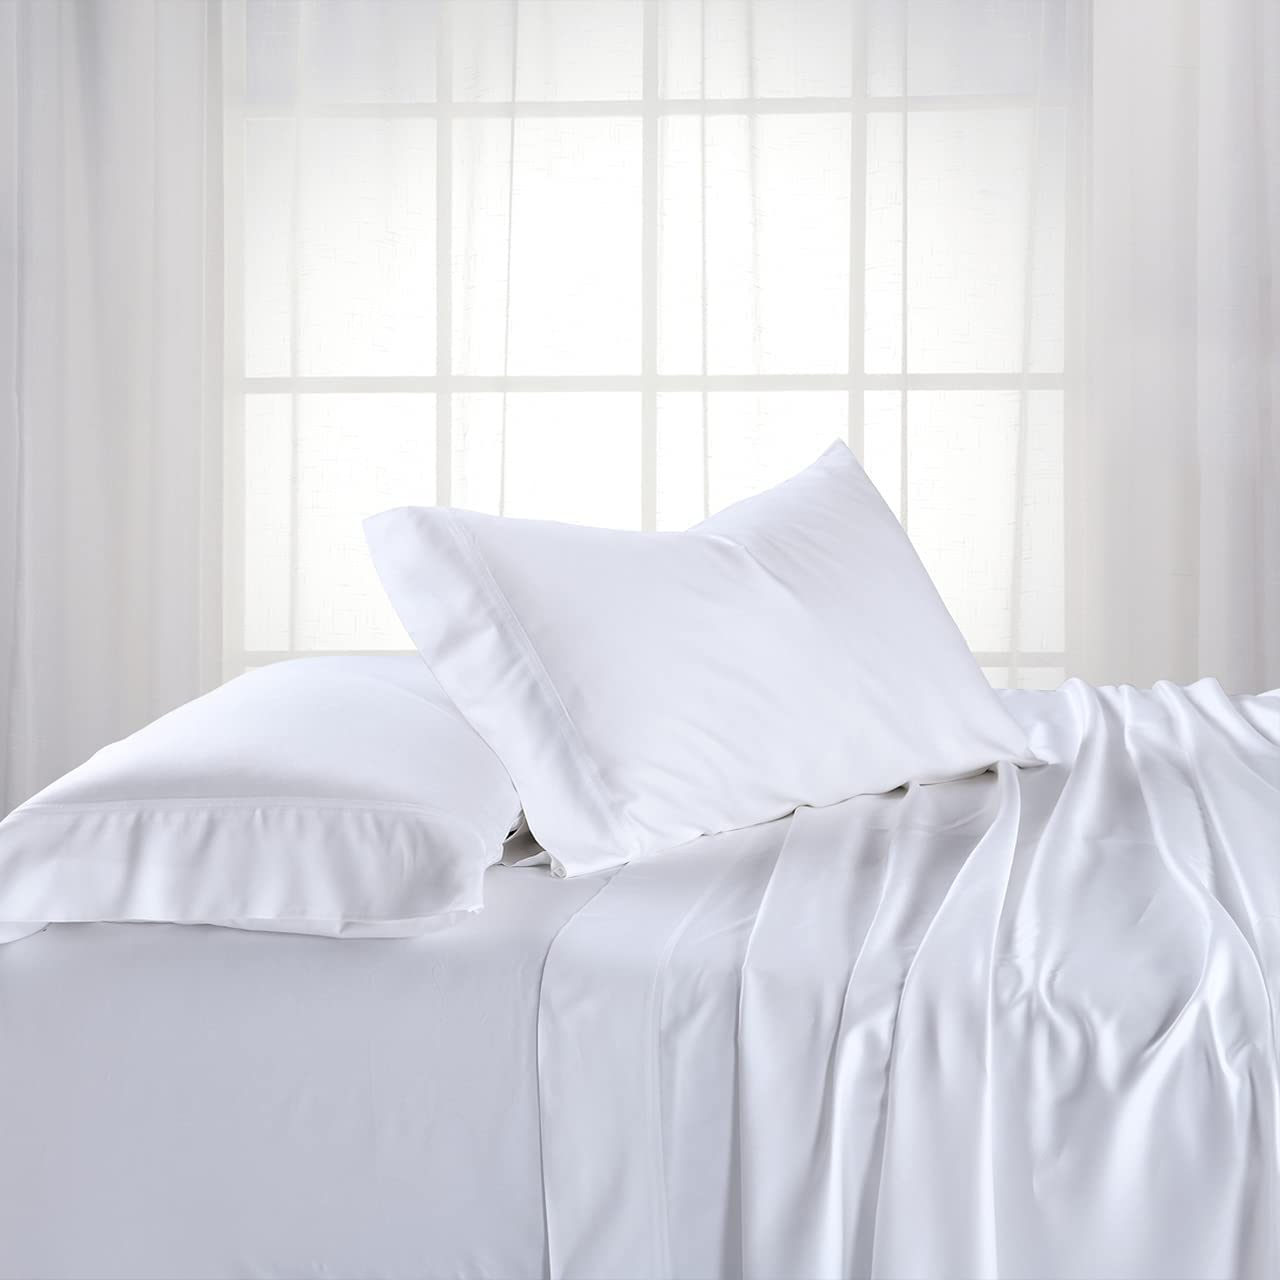 Royal Hotel Bedding ABRIPEDIC Bamboo Thread Pillowcases 600 Cou Clearance SALE! Limited time! New sales